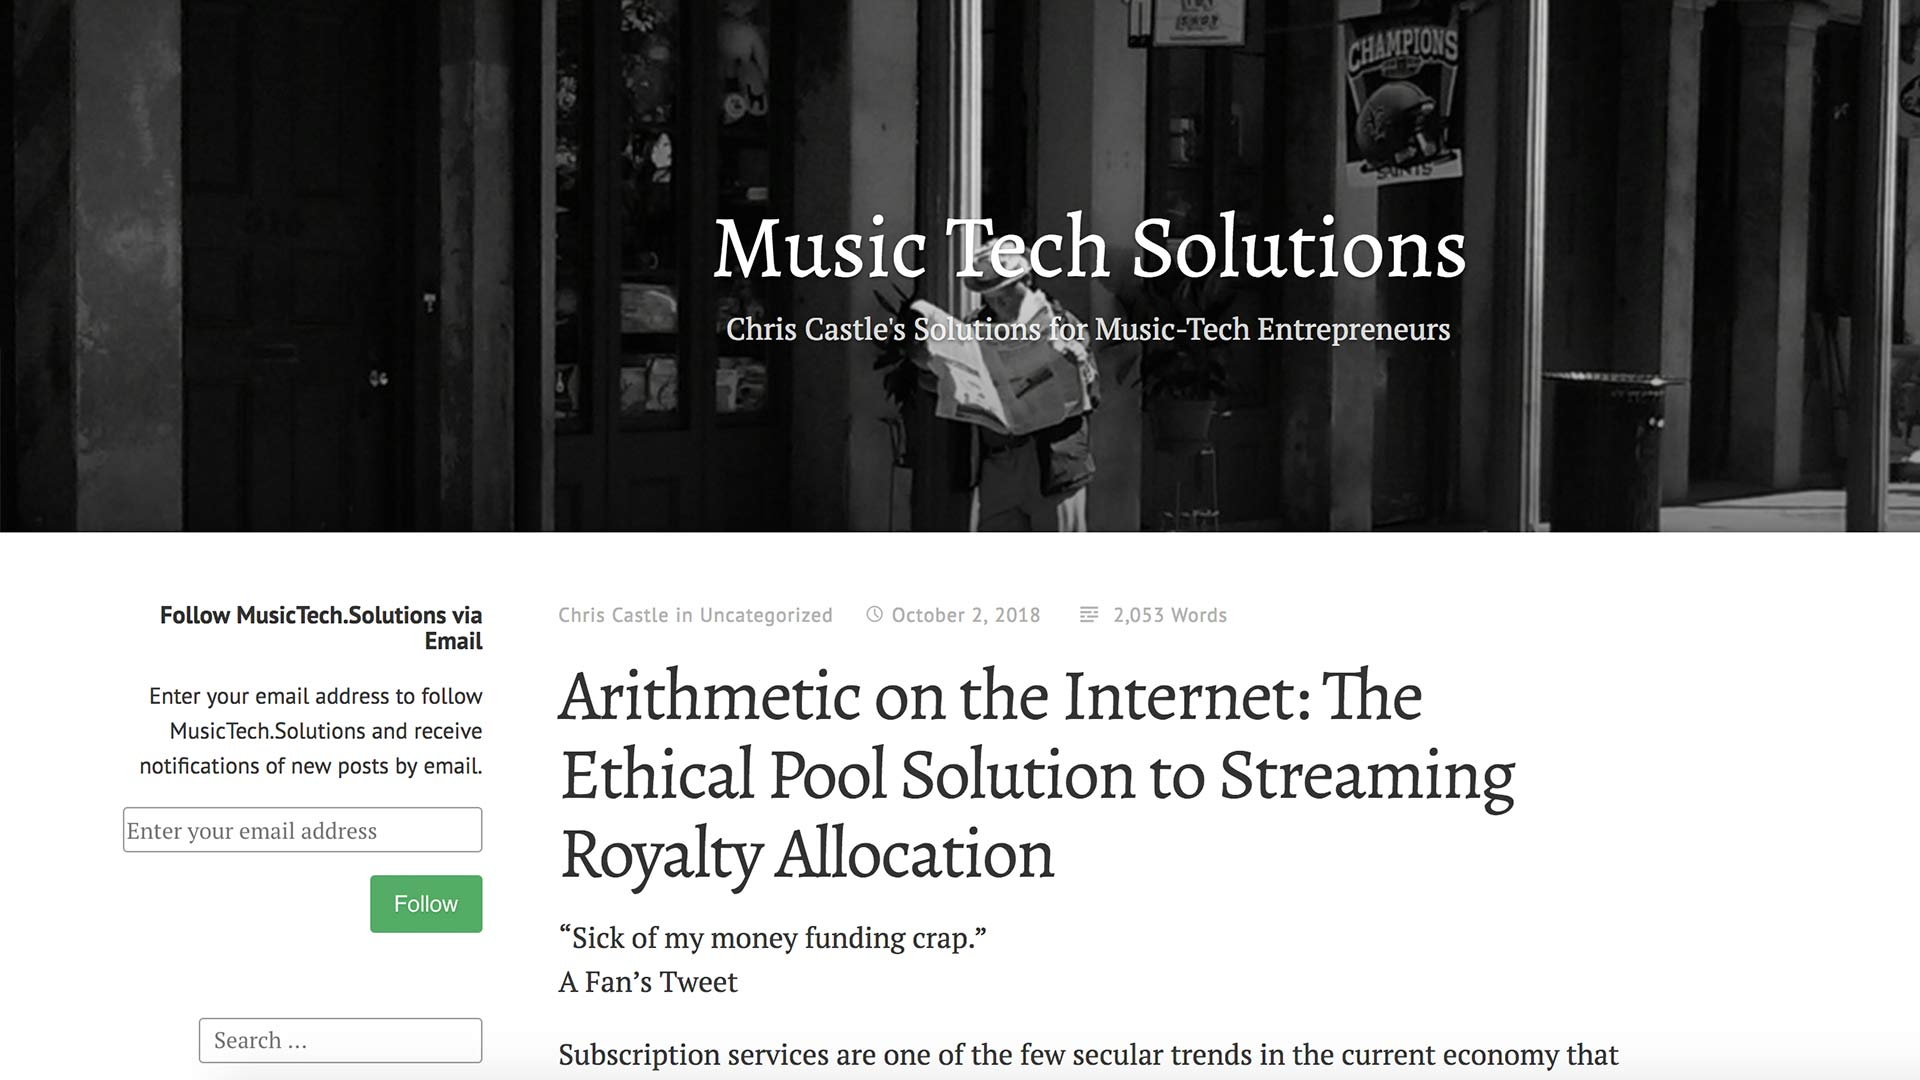 Fairness Rocks News Arithmetic on the Internet: The Ethical Pool Solution to Streaming Royalty Allocation